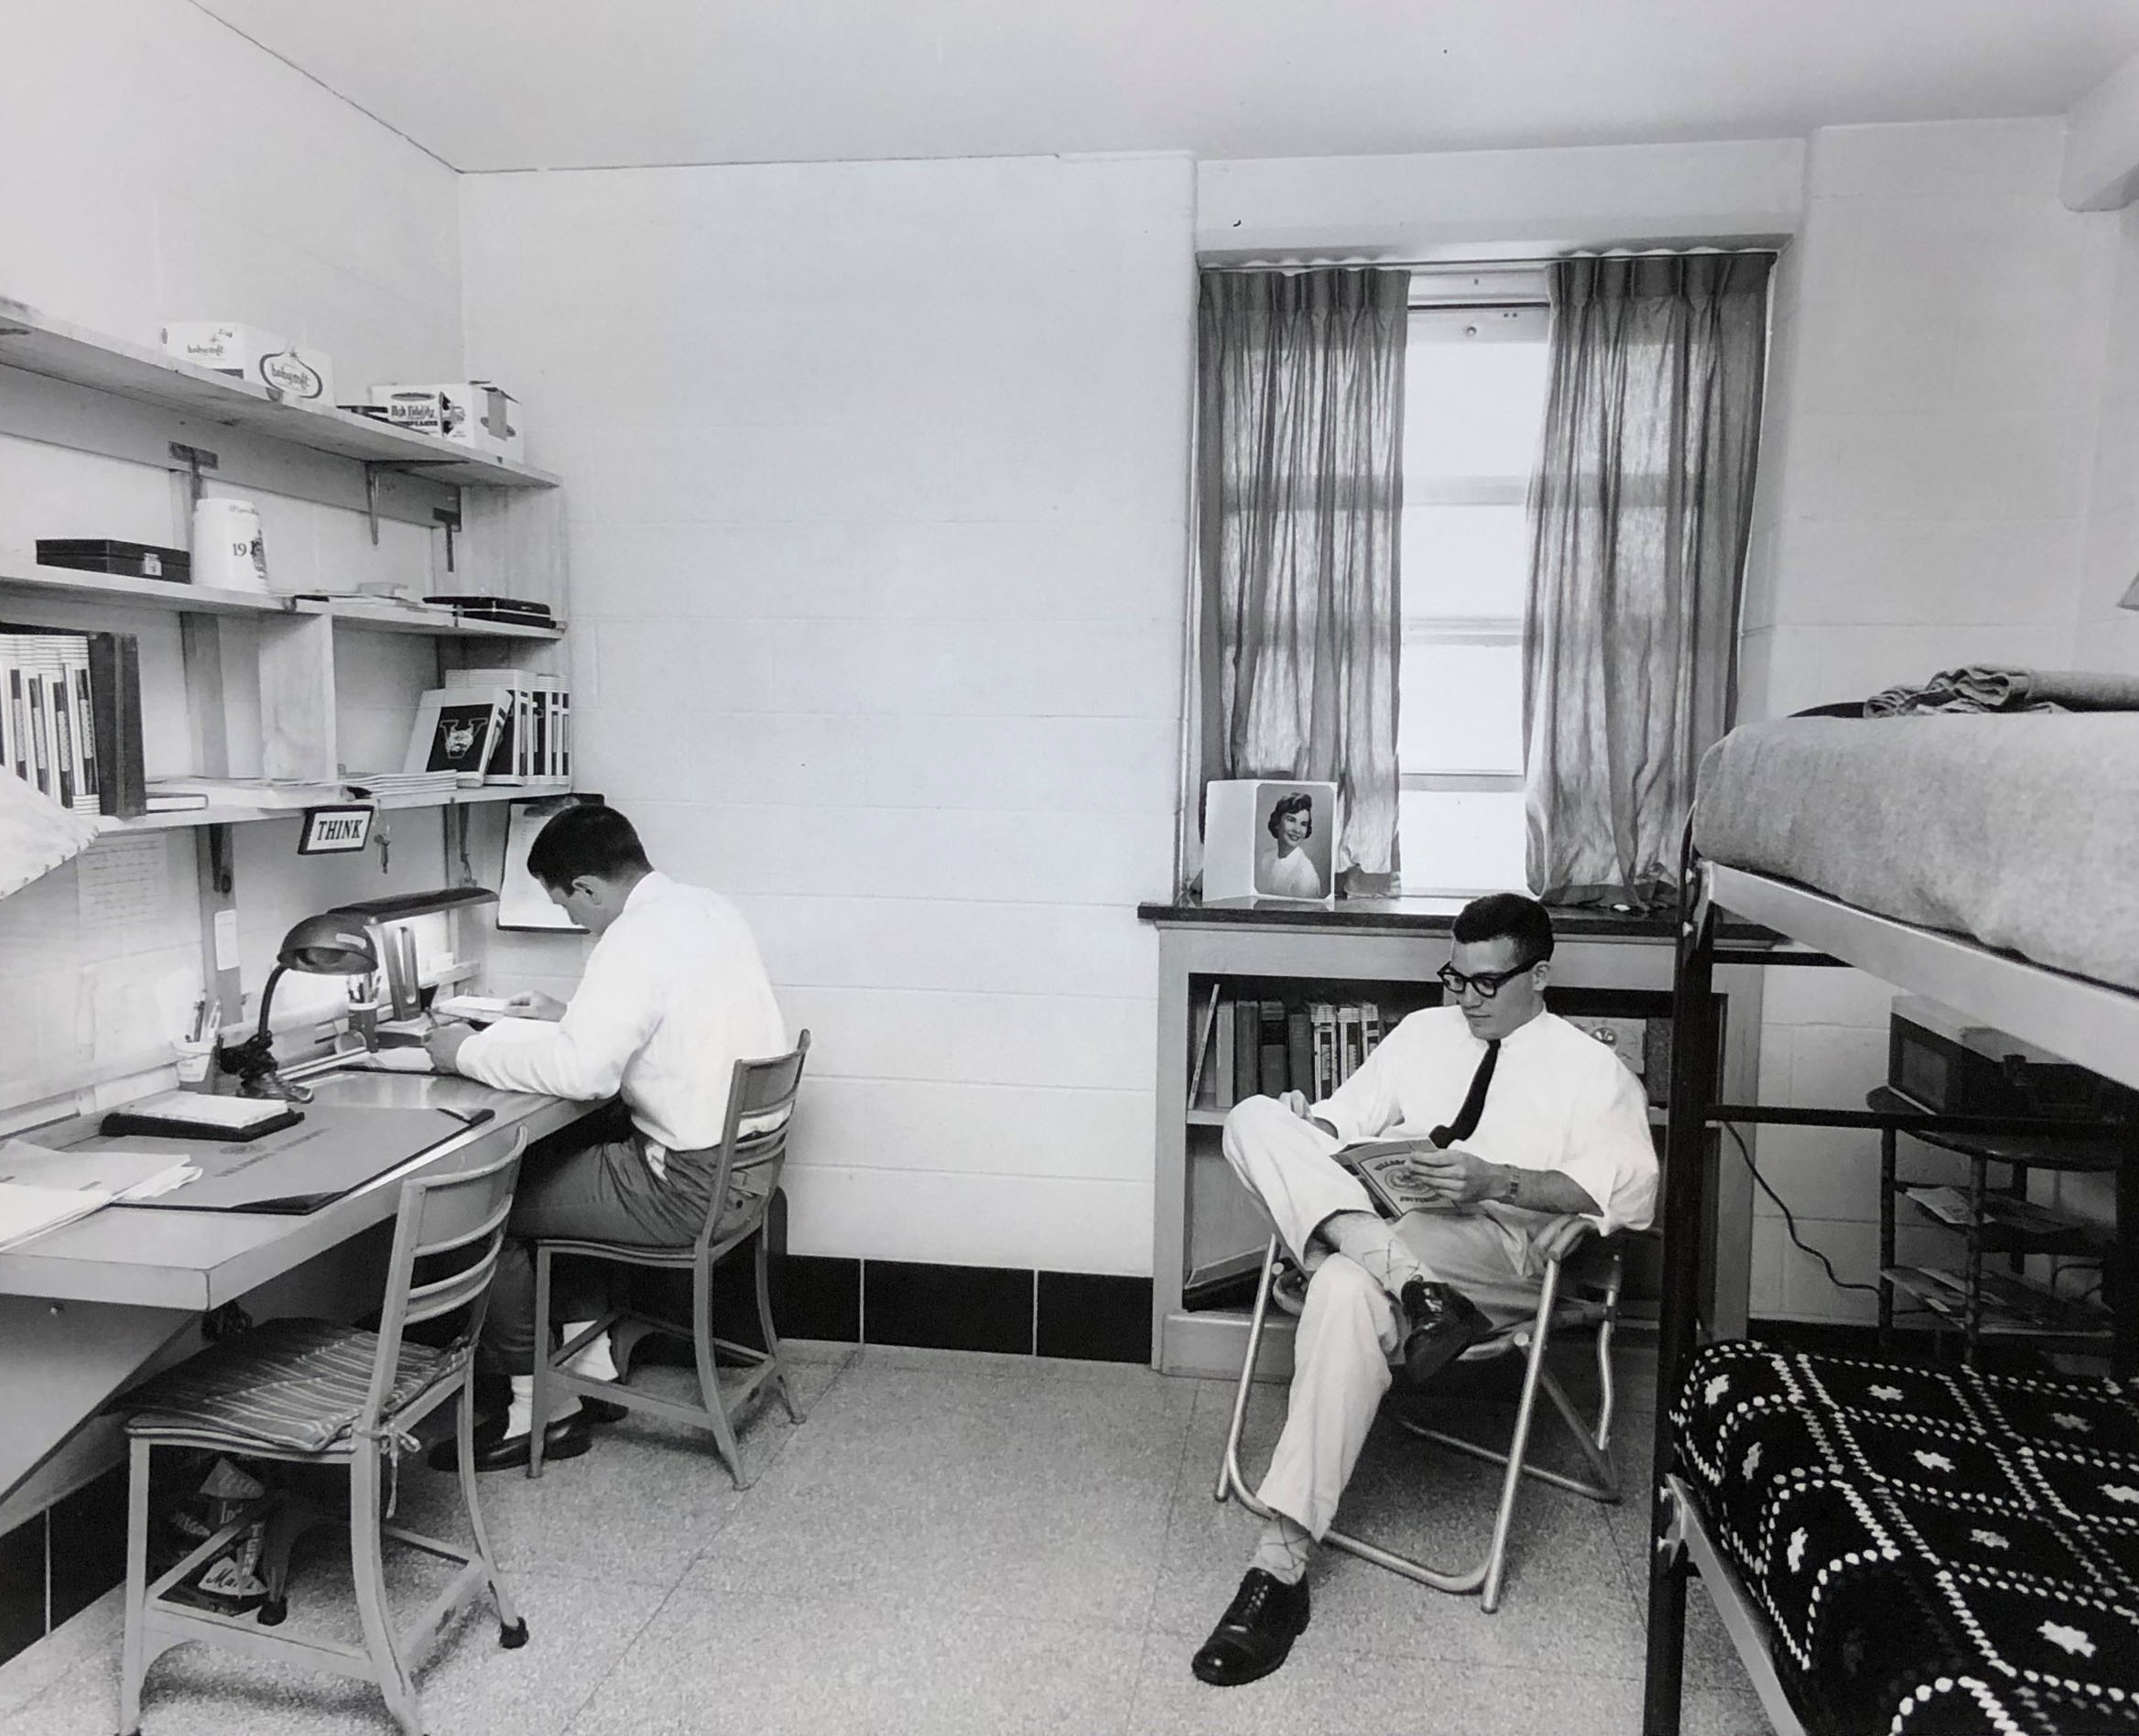 Students in Sheehan Hall, 1960 (VUA 35/7 Villanova Photograph Collection)